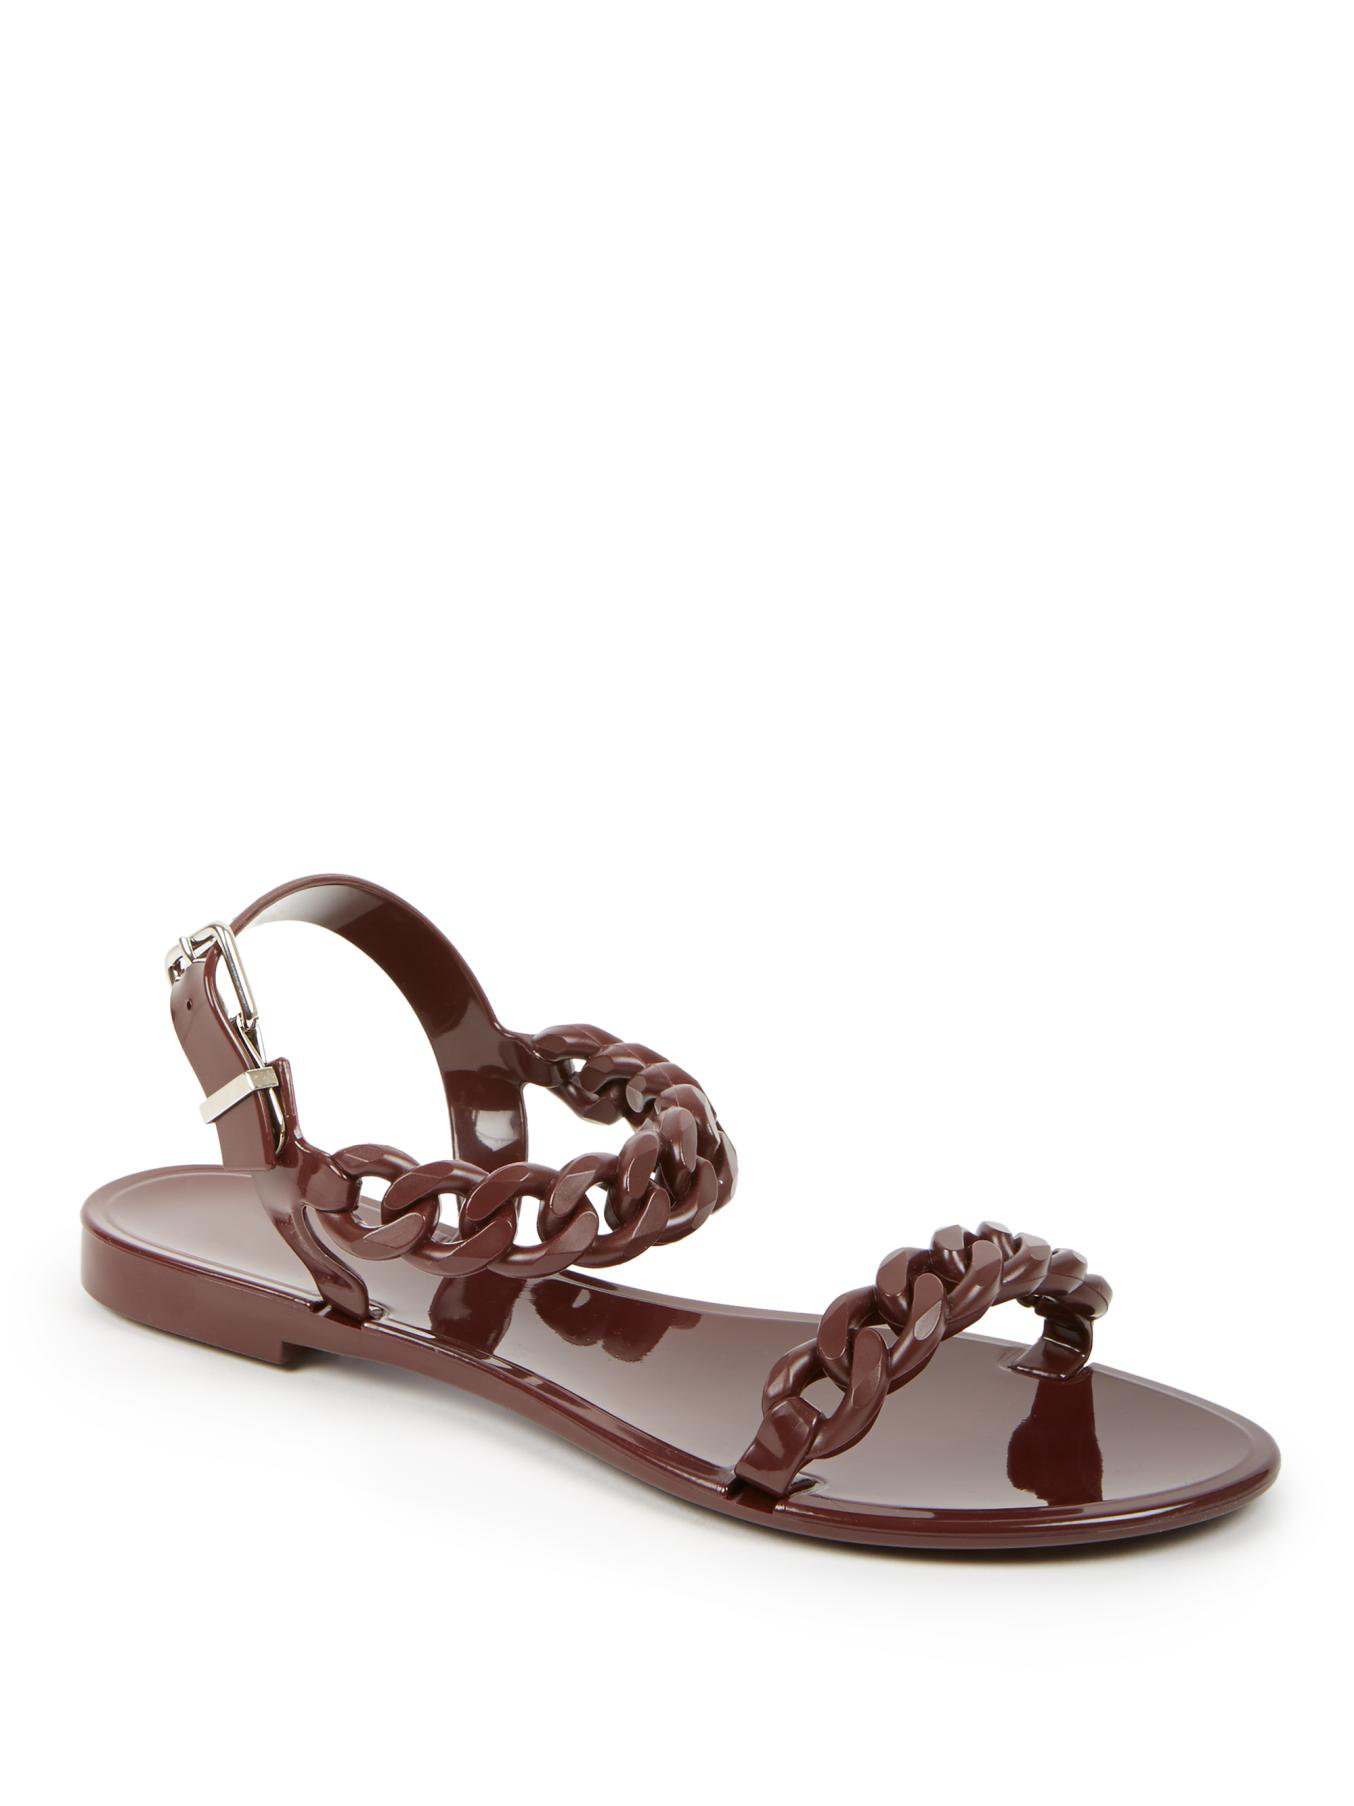 Givenchy Nea Jelly Flat Sandals In Purple burgundy Lyst